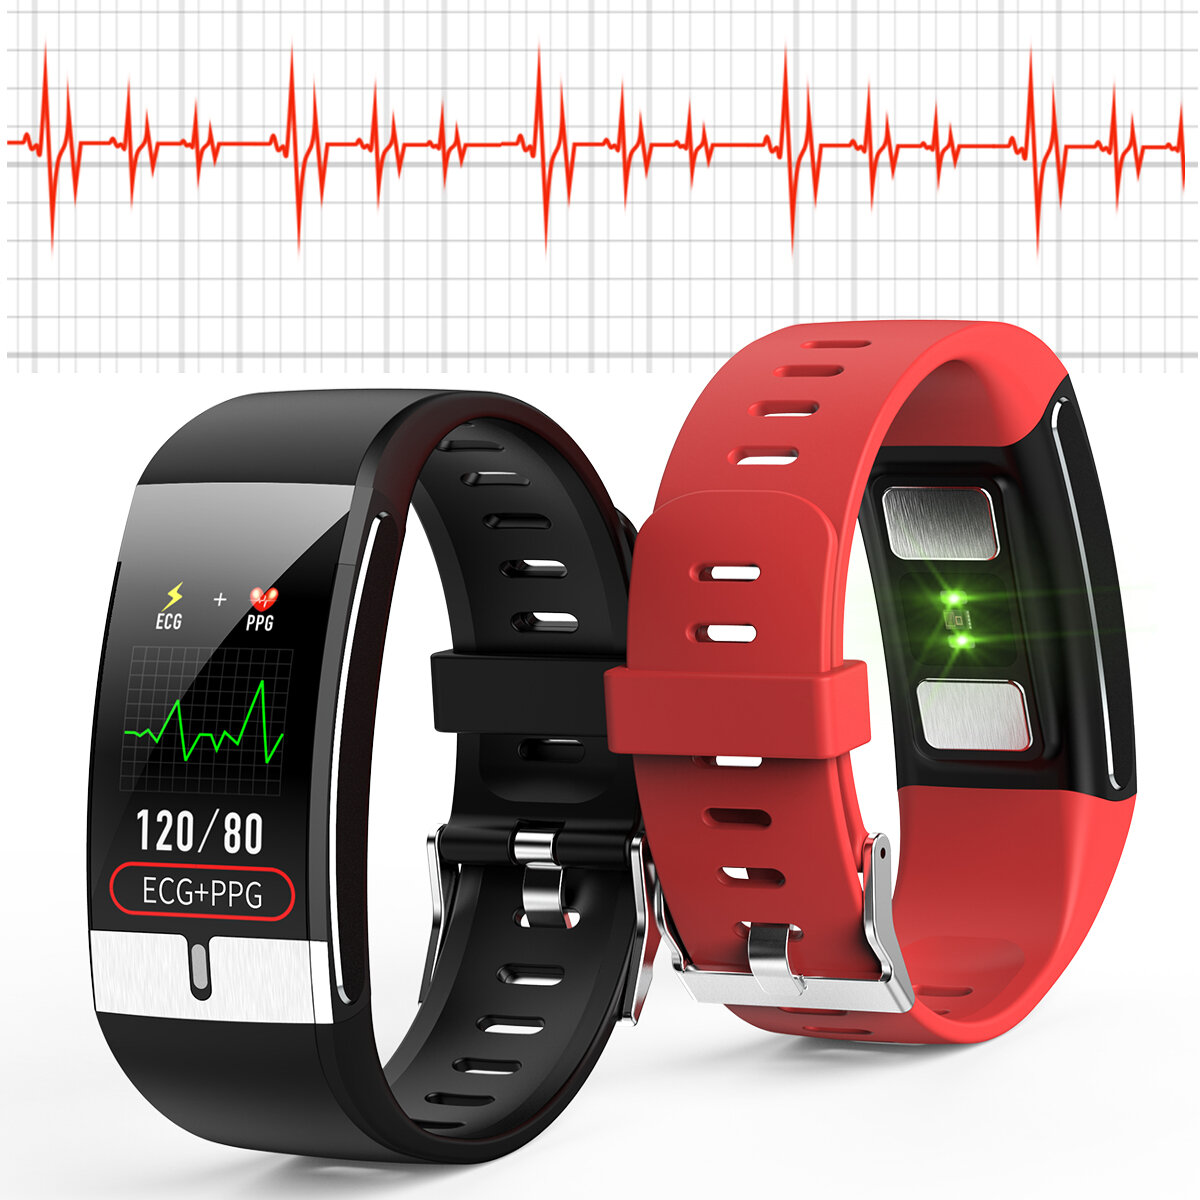 [SPO2 Monitor]Bakeey E66 Thermometer ECG+PPG Heart Rate Blood Pressure Oxygen Monitor IP68 Waterproof USB Charging Smart